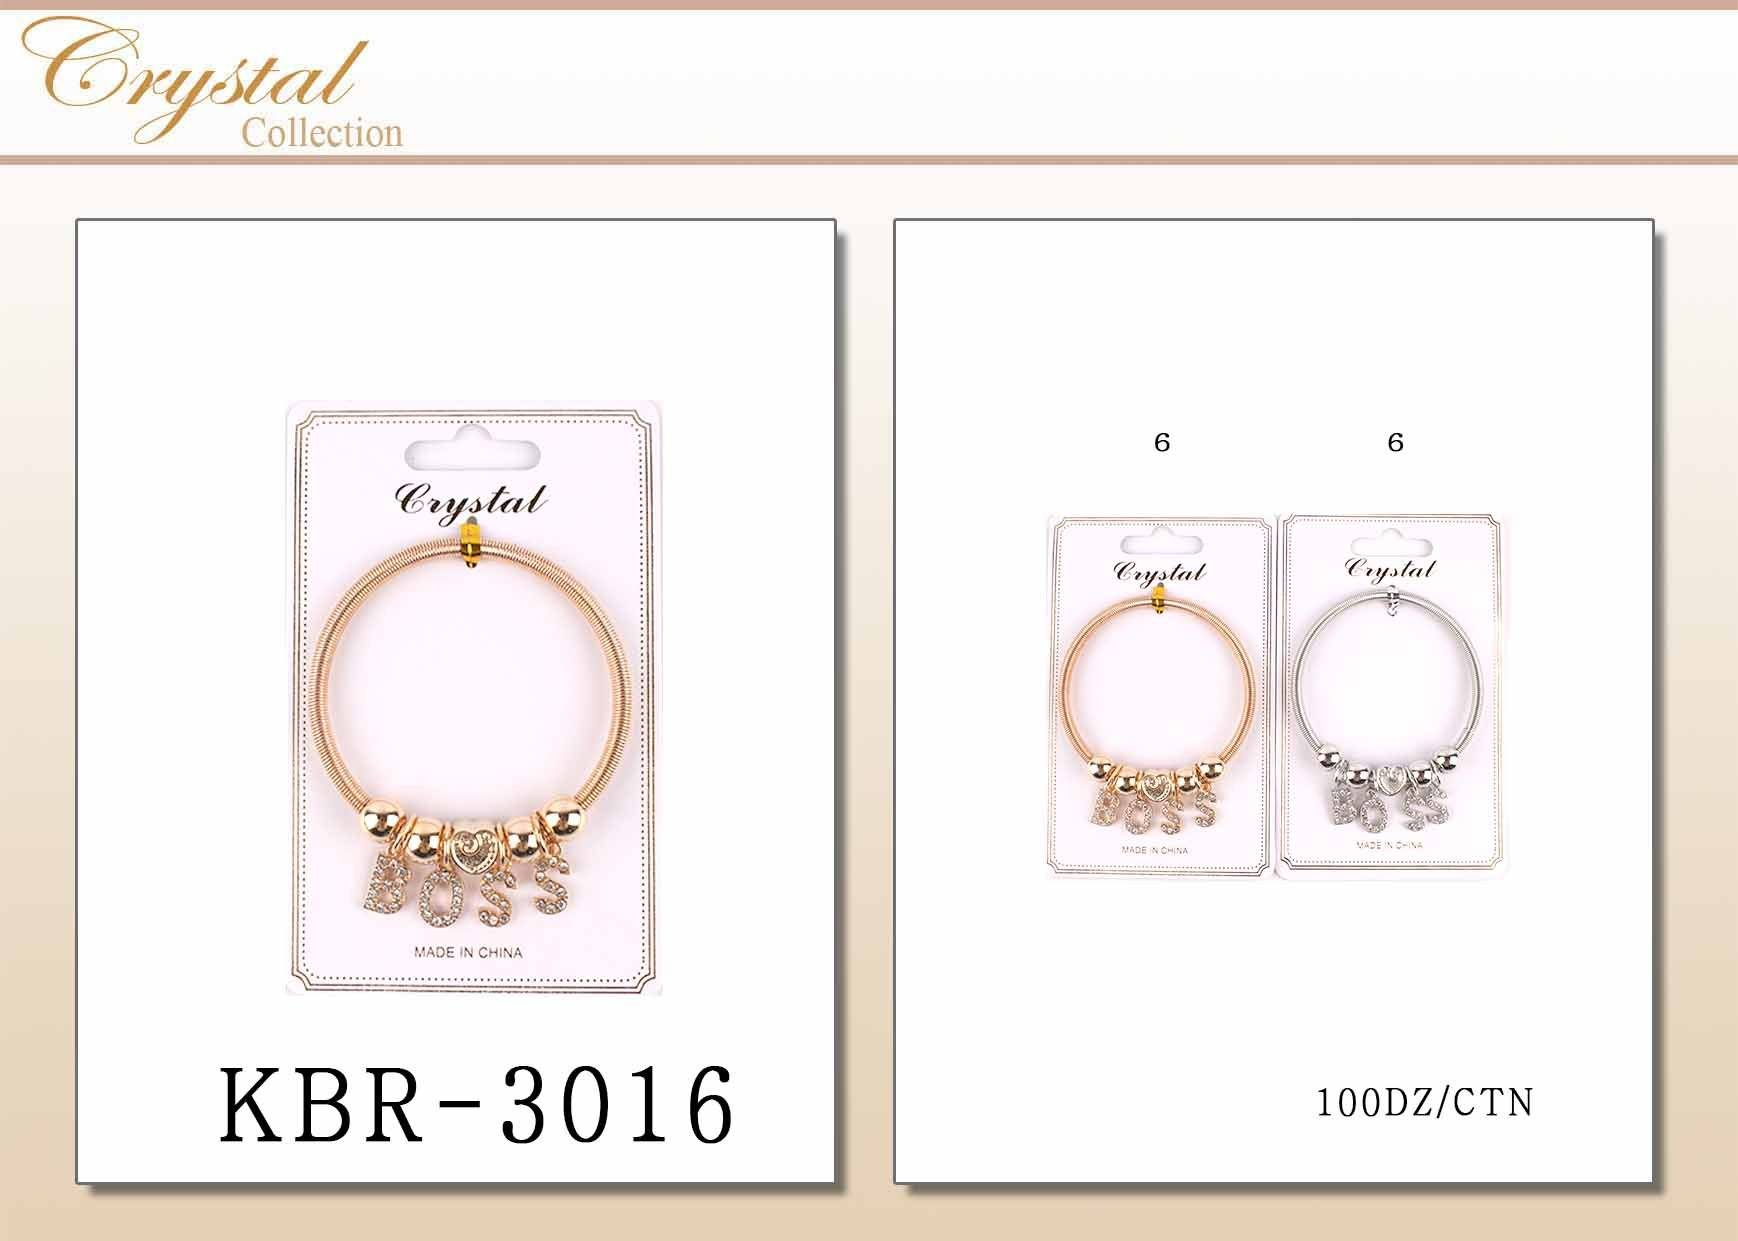 Fashion Jewelry By the Dozen (12PC) #KBR3016